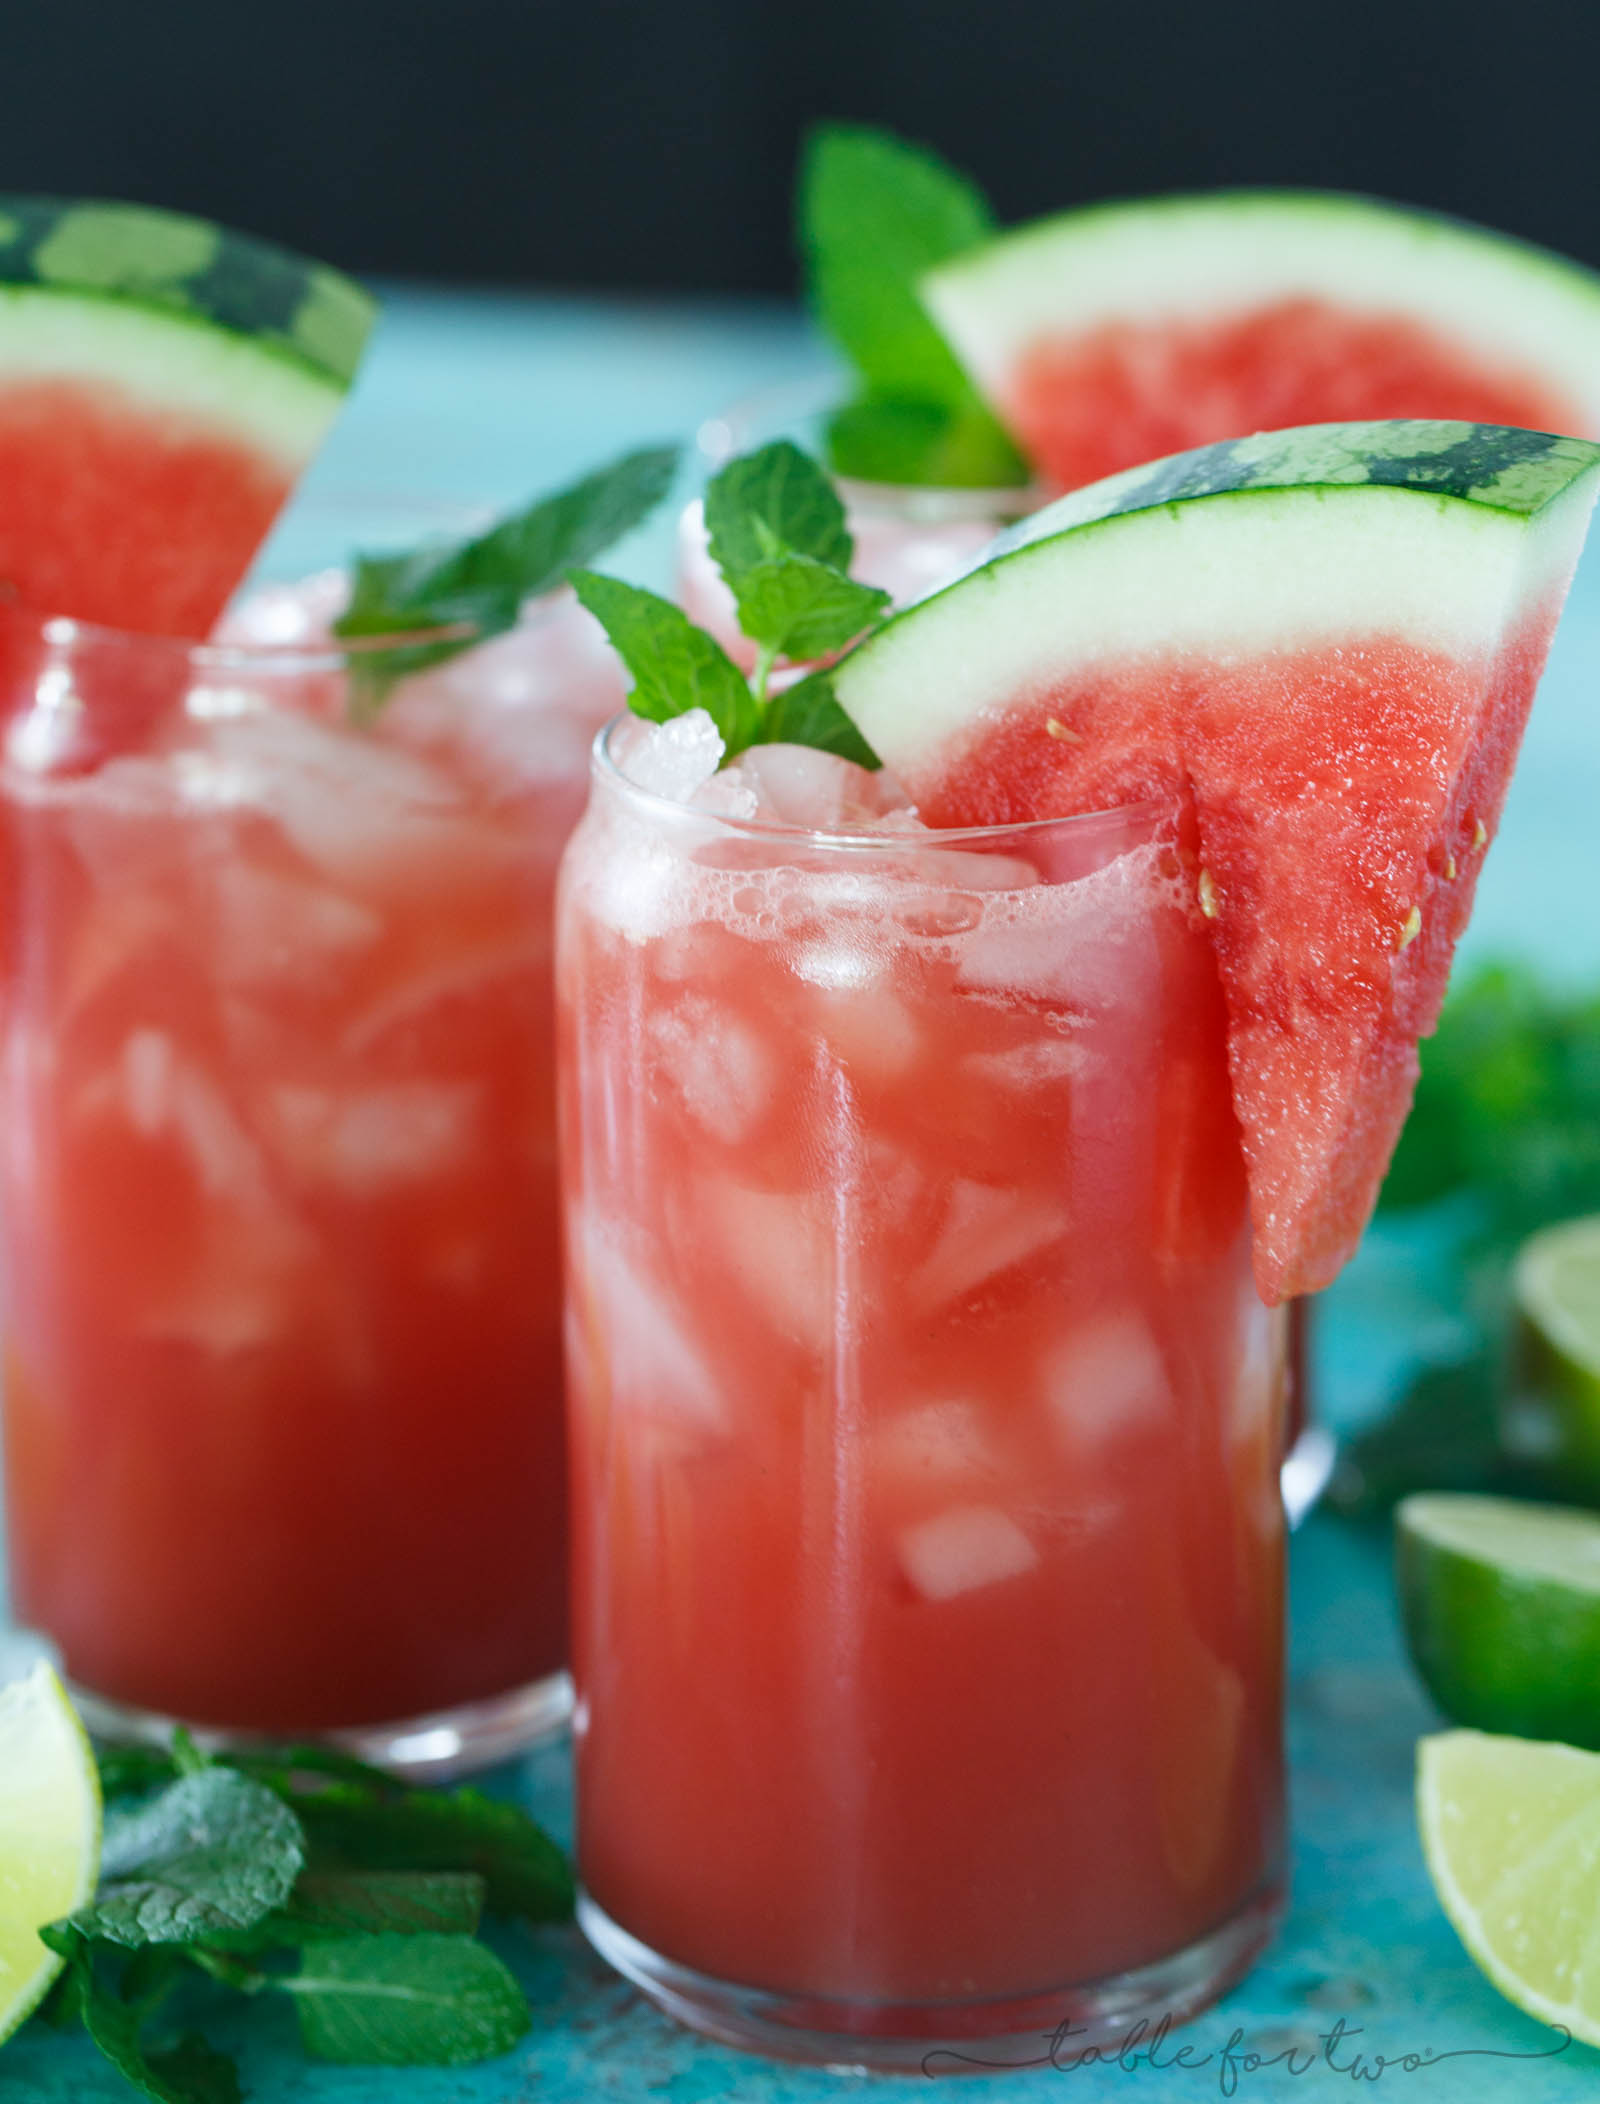 Cool off with this refreshing and easy watermelon mint lime juice! A must for the hot summer days!